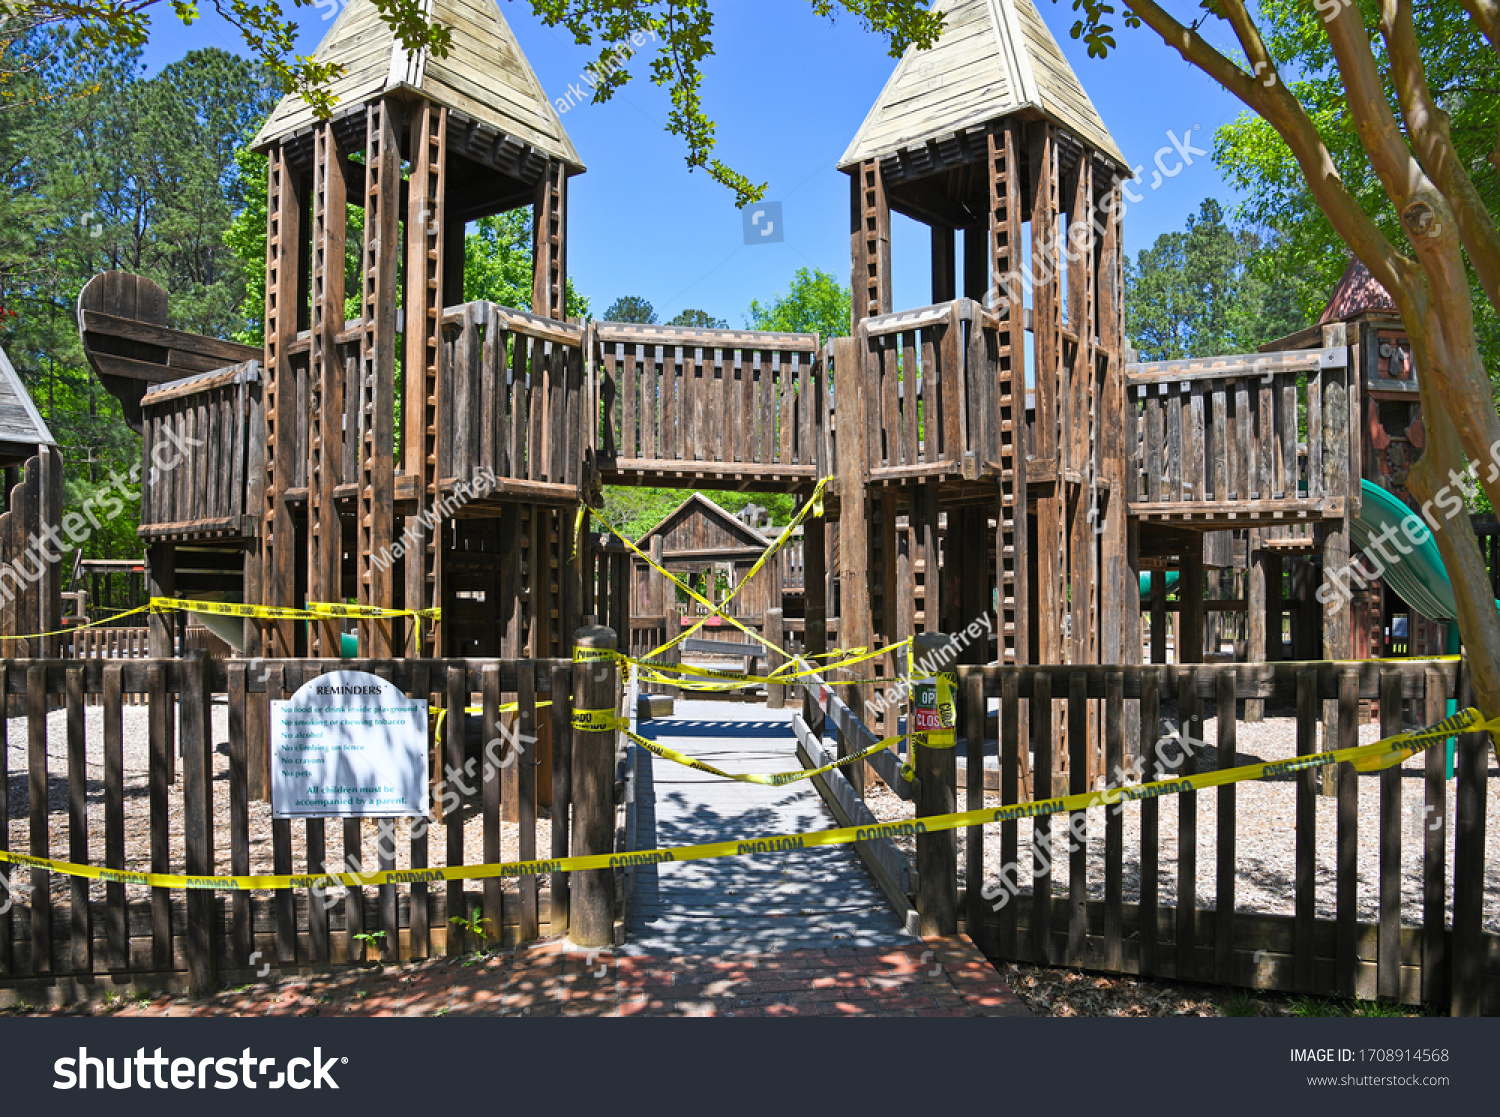 stock-photo-empty-playgound-closed-due-t